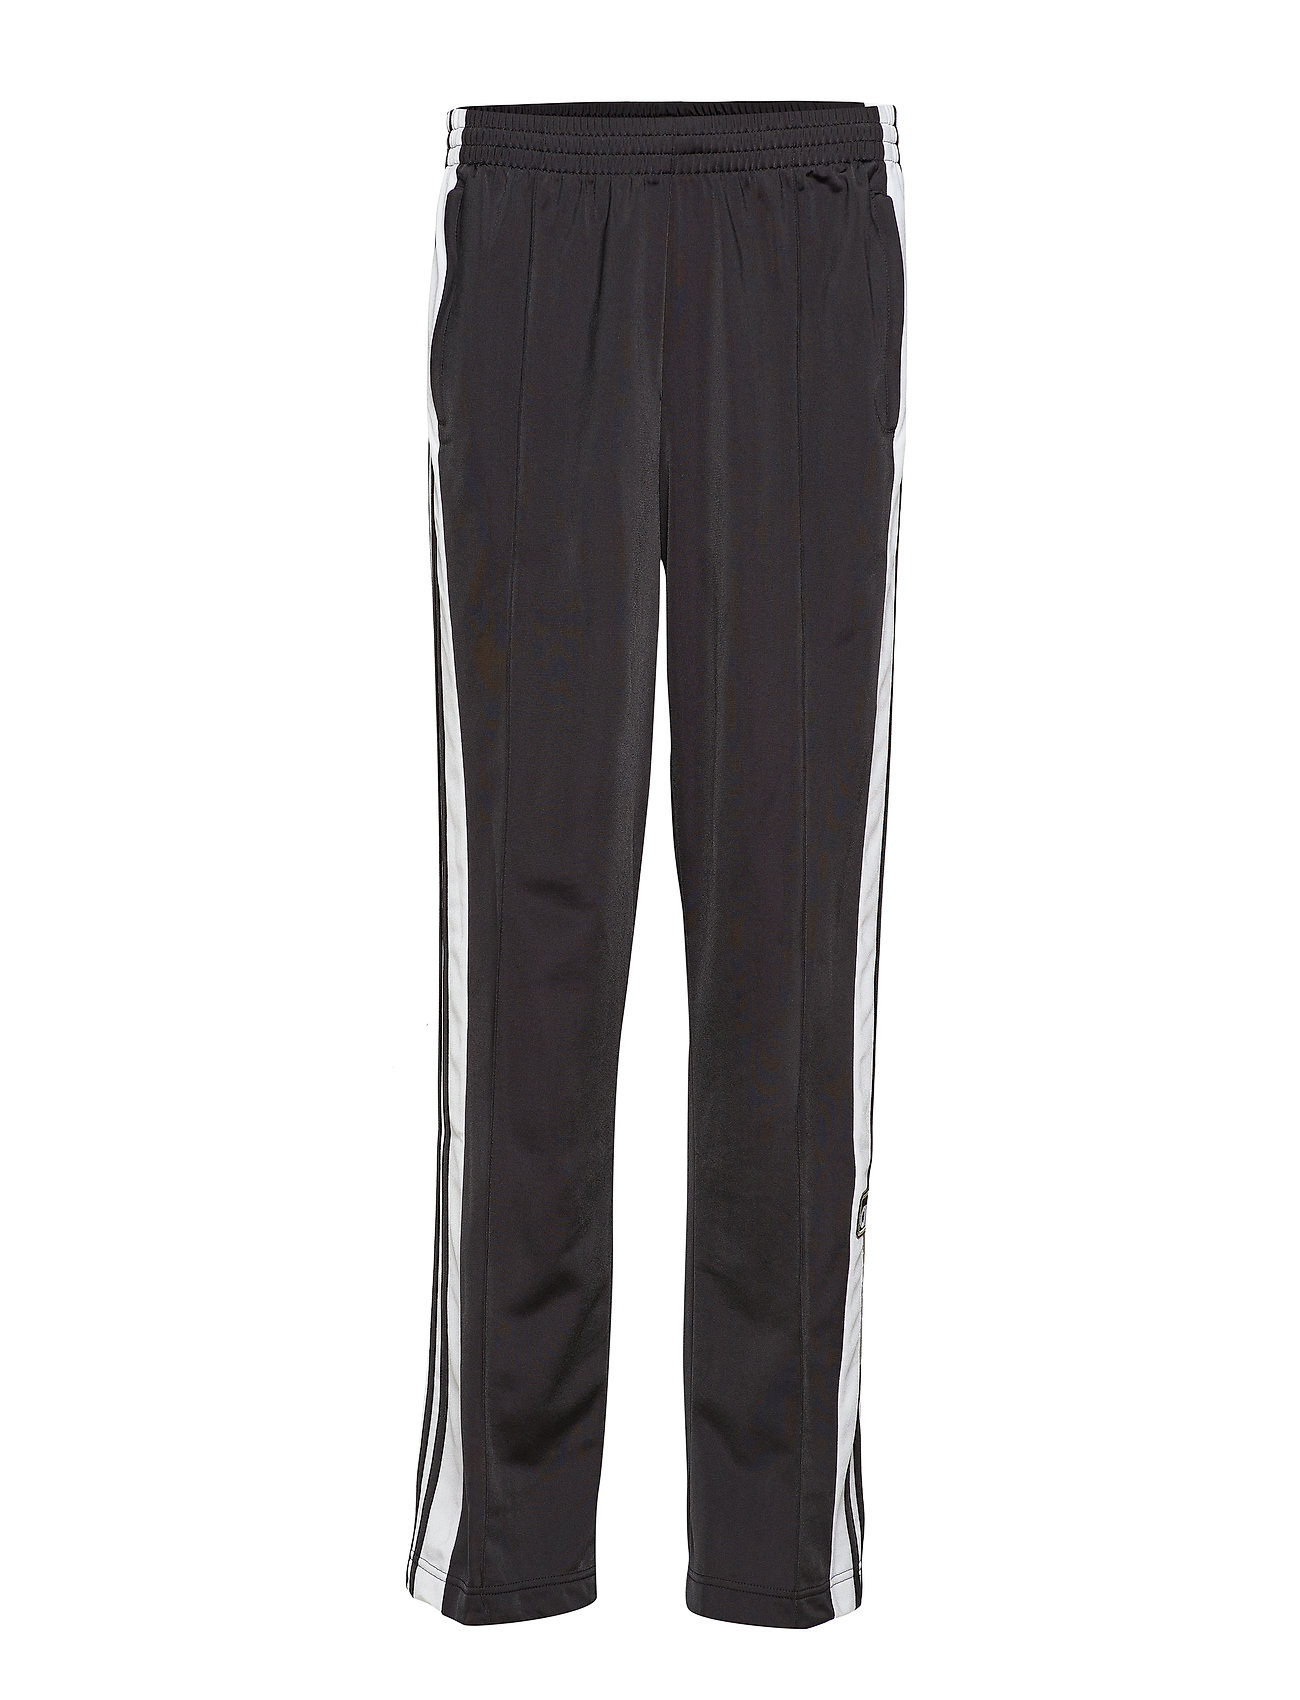 adidas Originals ADIBREAK PANT - BLACK/CARBON